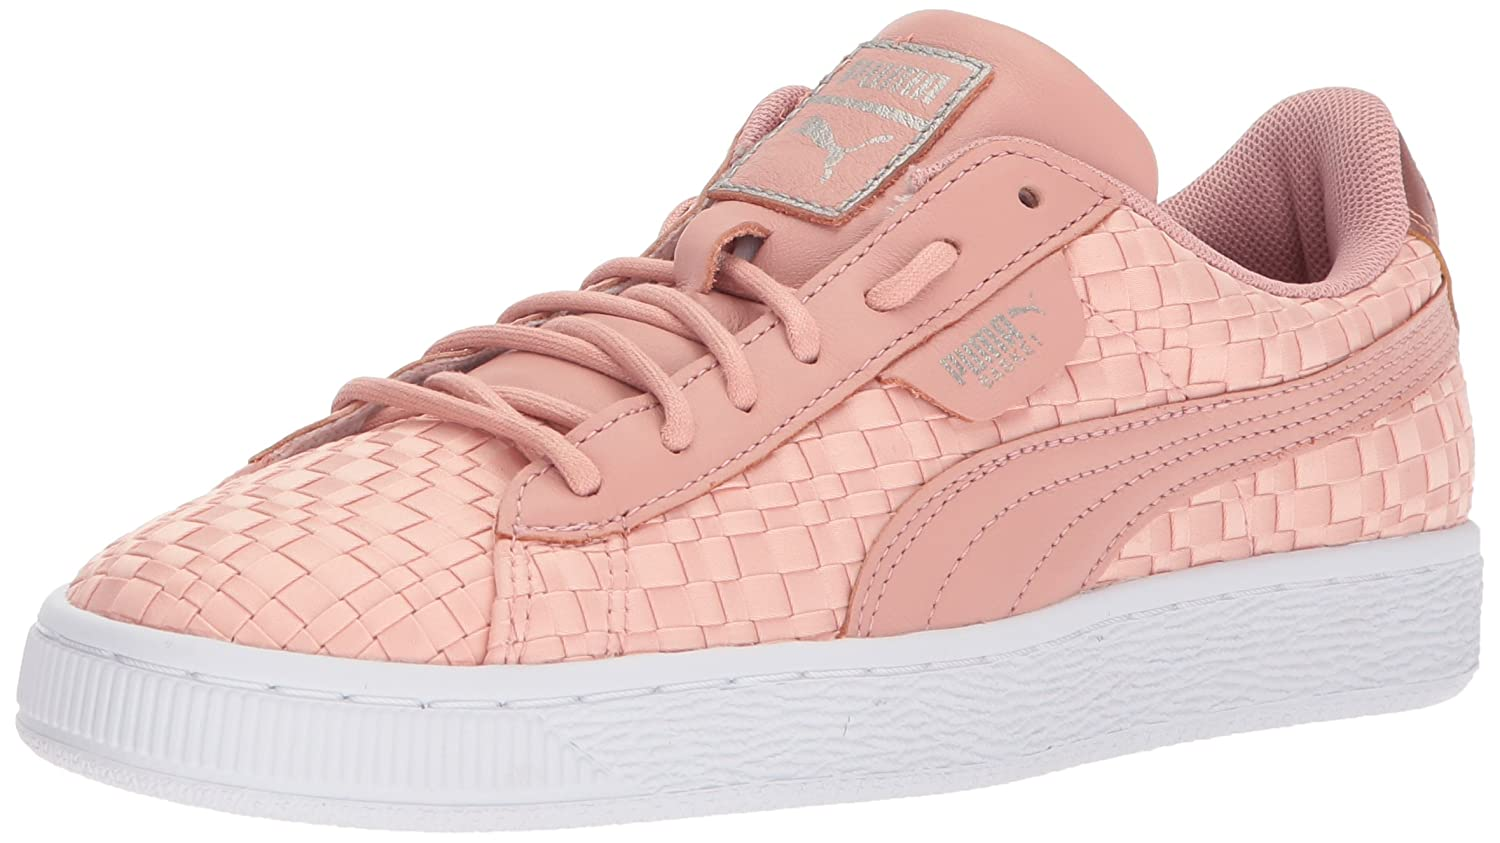 newest a121f 0ff86 PUMA Women's Basket Satin En Pointe Sneaker B072KCQ99Z 9.5 B ...